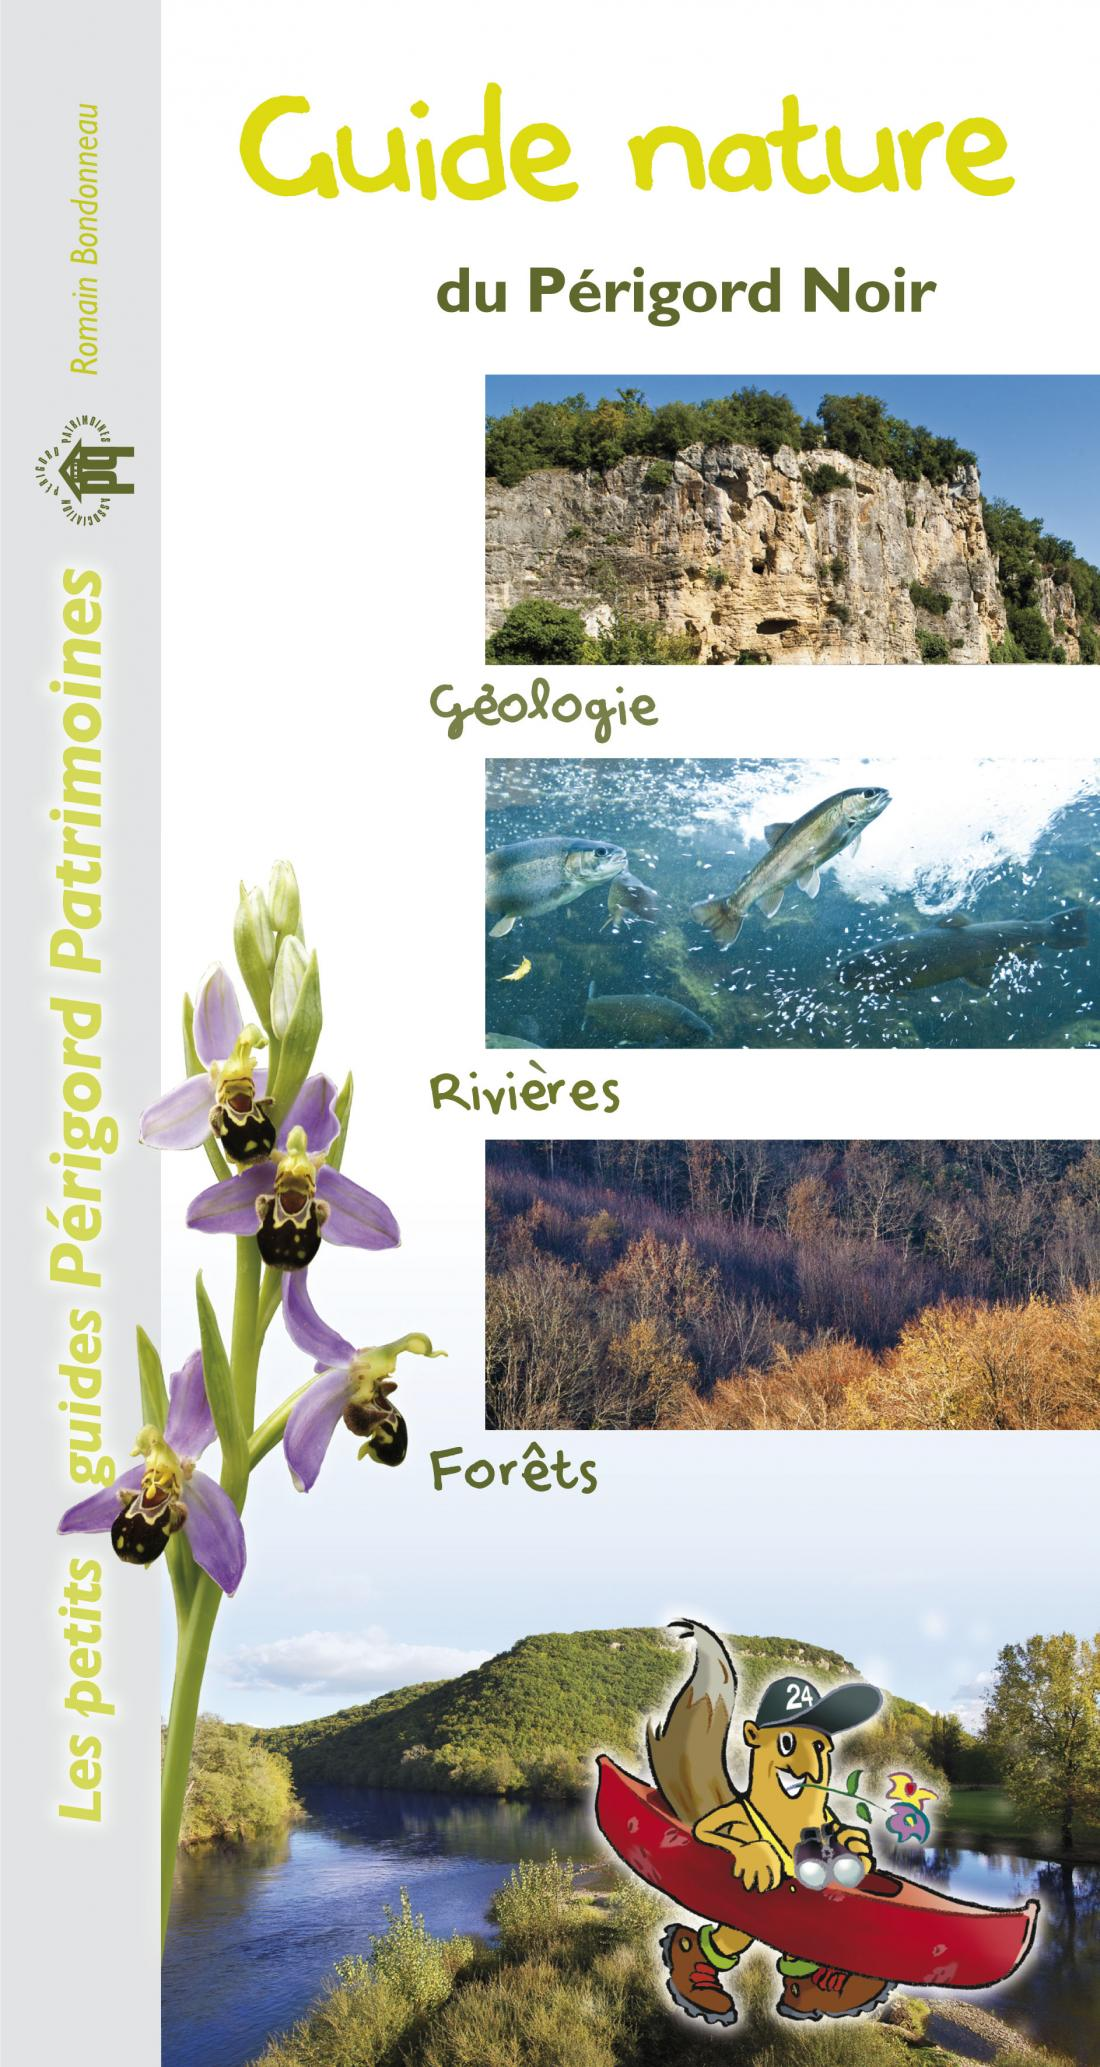 uploads/Couverture_guide_nature1413554282.jpg